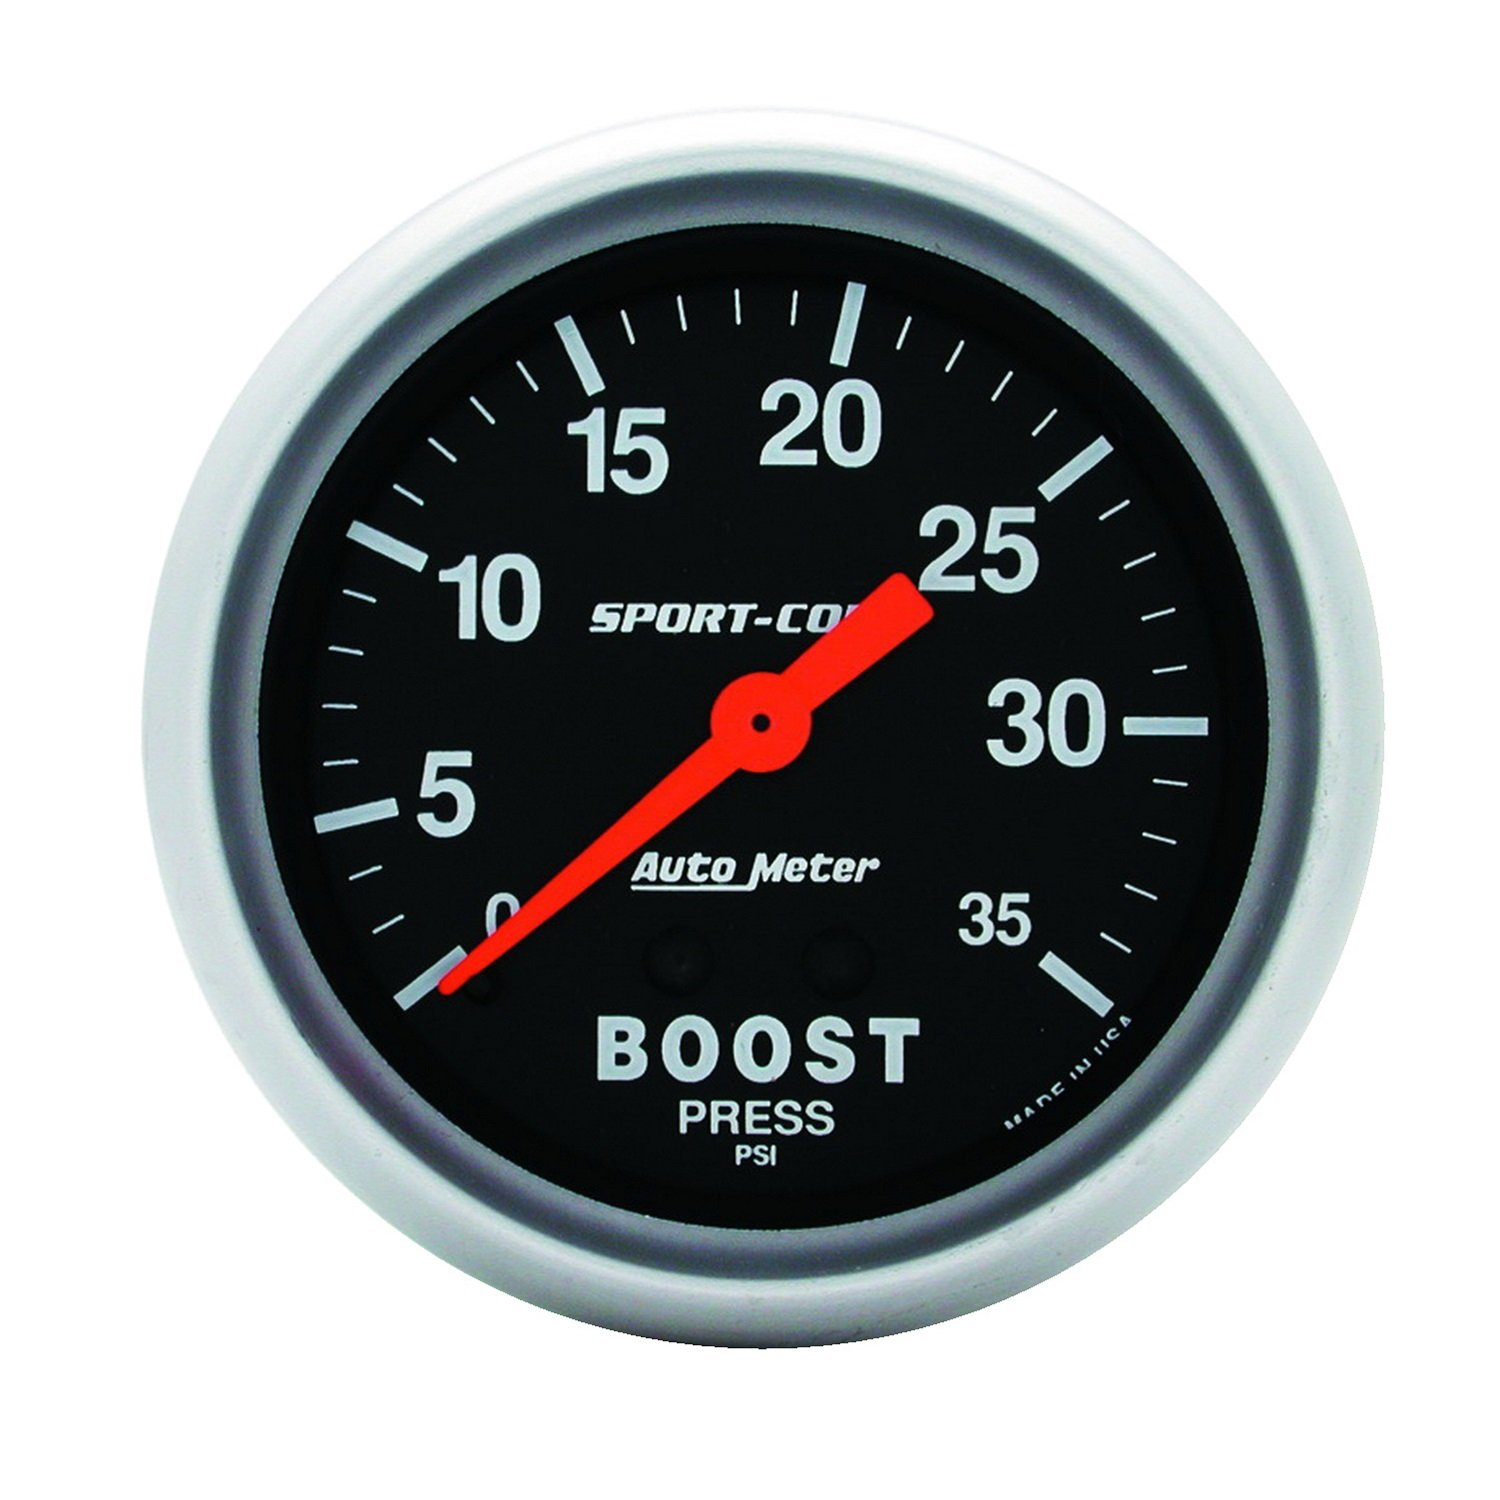 Auto Meter 3404 Sport-Comp Mechanical Boost Gauge by Auto Meter (Image #1)